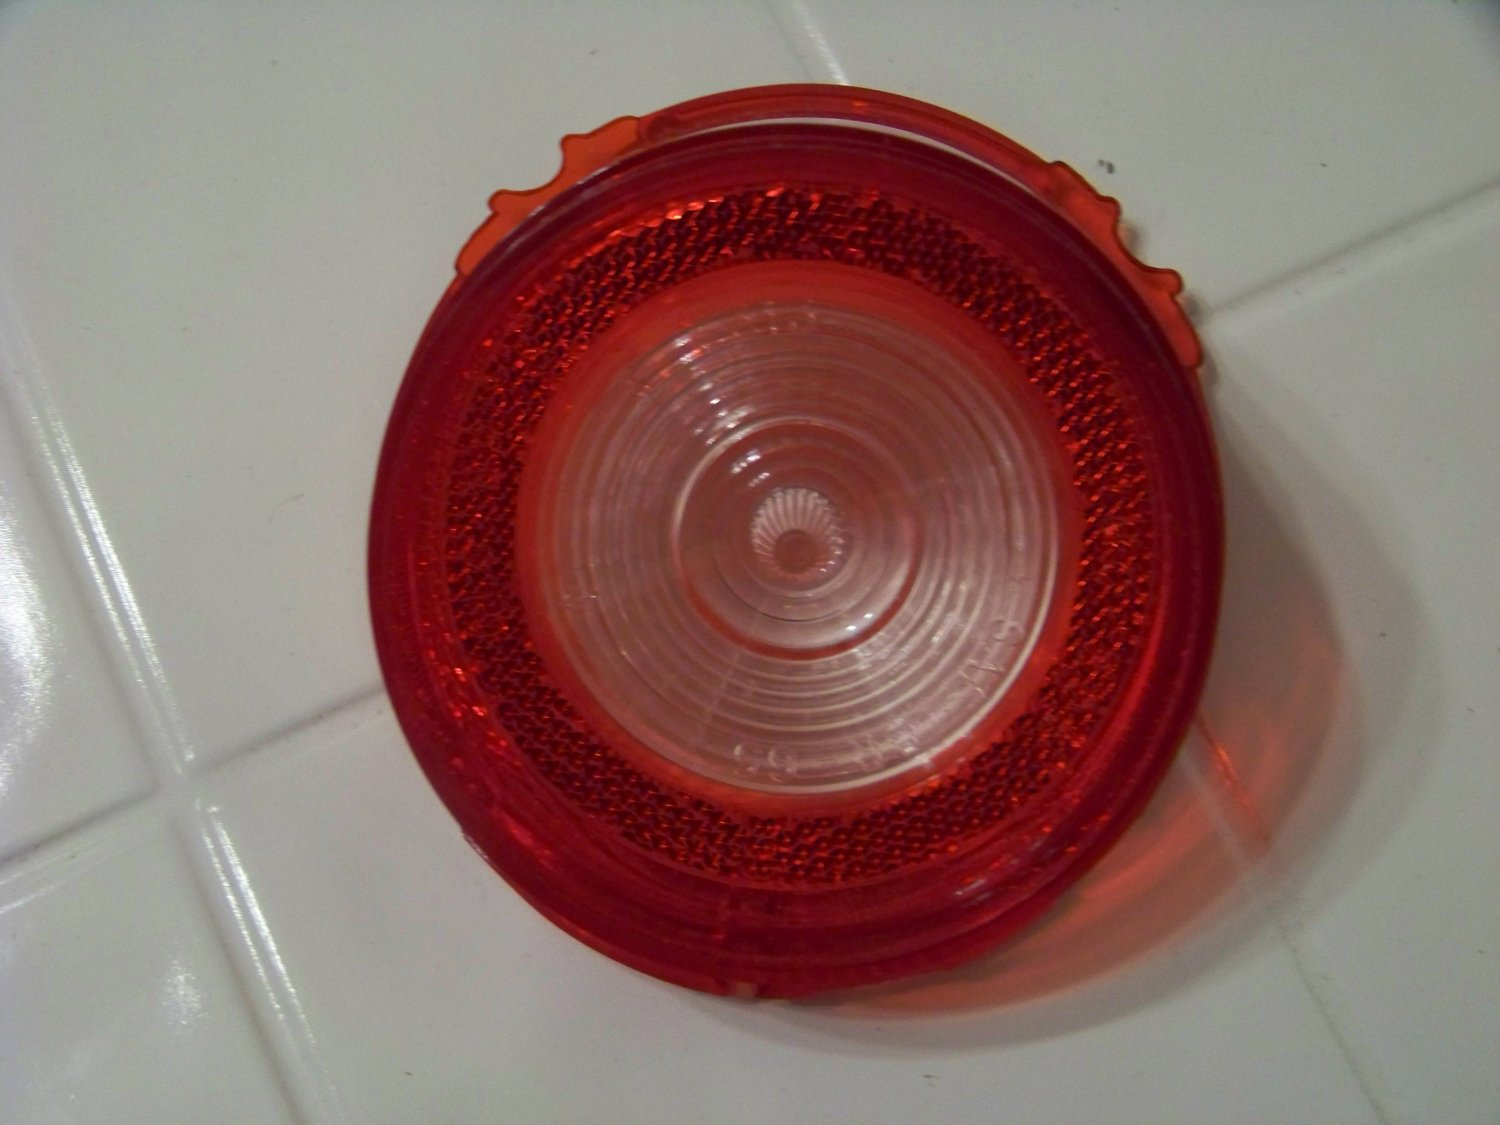 1965 Chevrolet Chevy biscayne back up lens  glo-brite t-6313 sae br 65 no trim